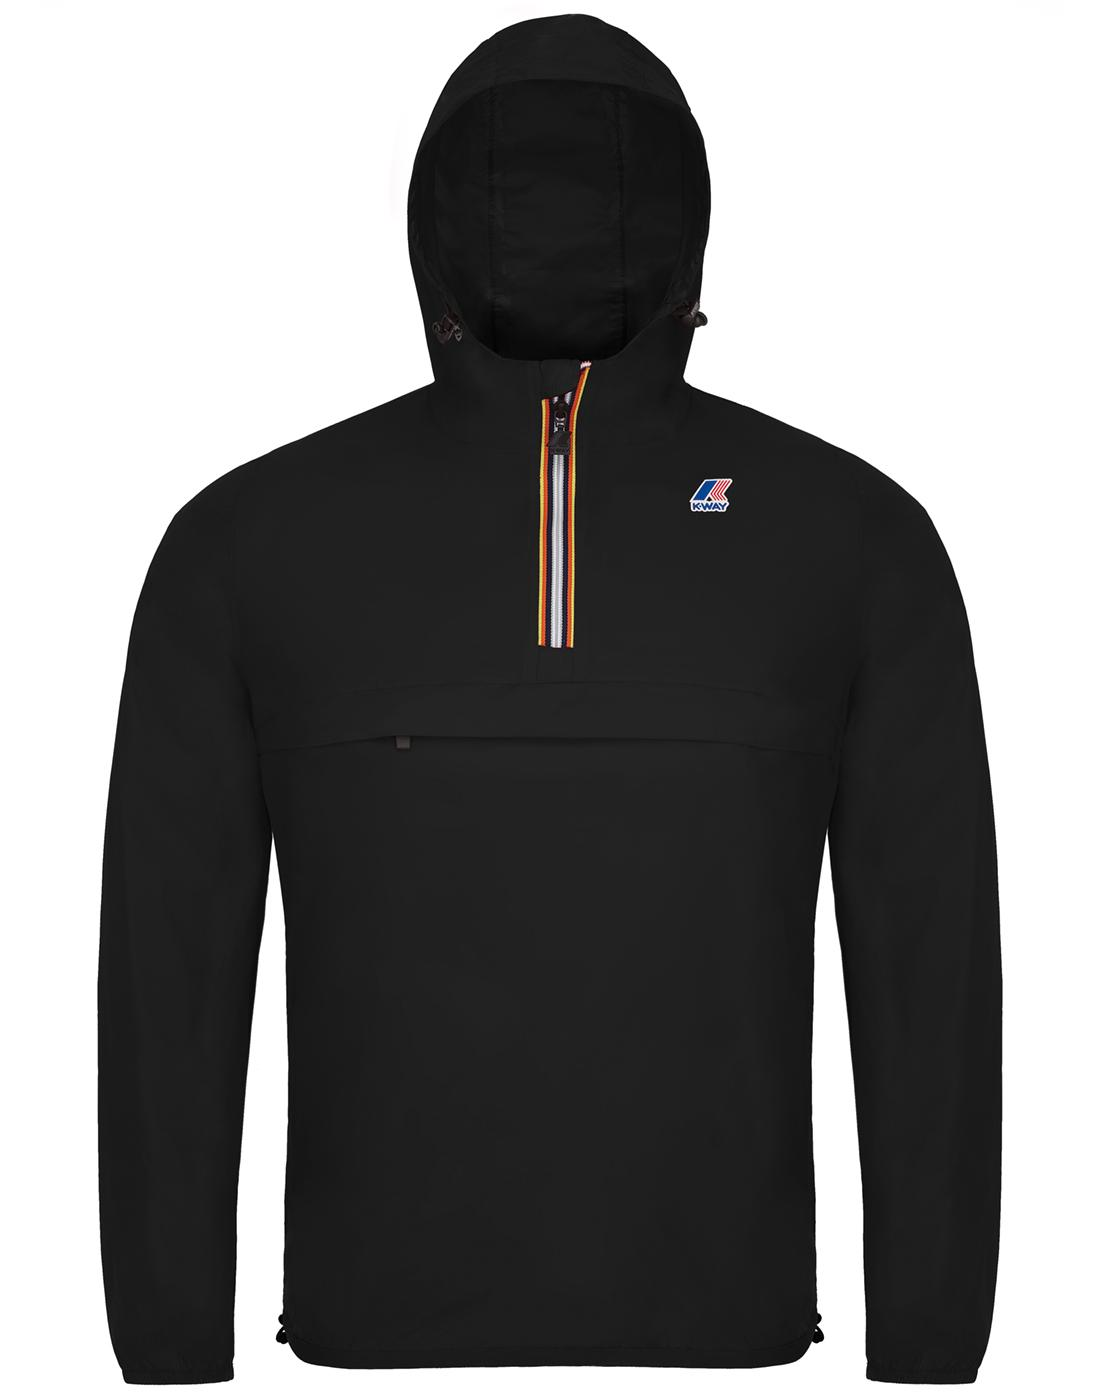 Leon K-WAY Retro Pack-A-Mac Half Zip Cagoule Black